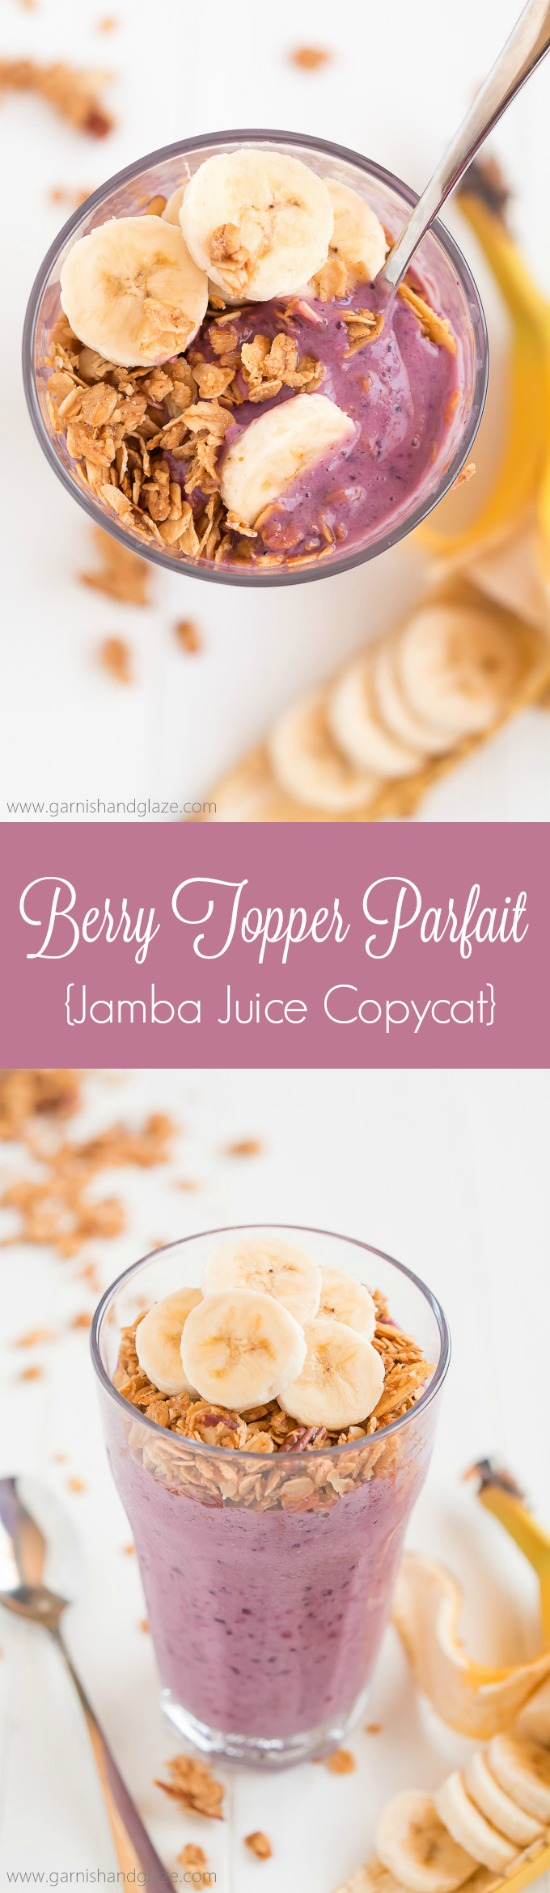 Take 3 minutes to throw together this 5-ingredient Berry Topper Parfait, a Jamba Juice Copycat recipe, for a healthy, refreshing, and filling breakfast or snack.